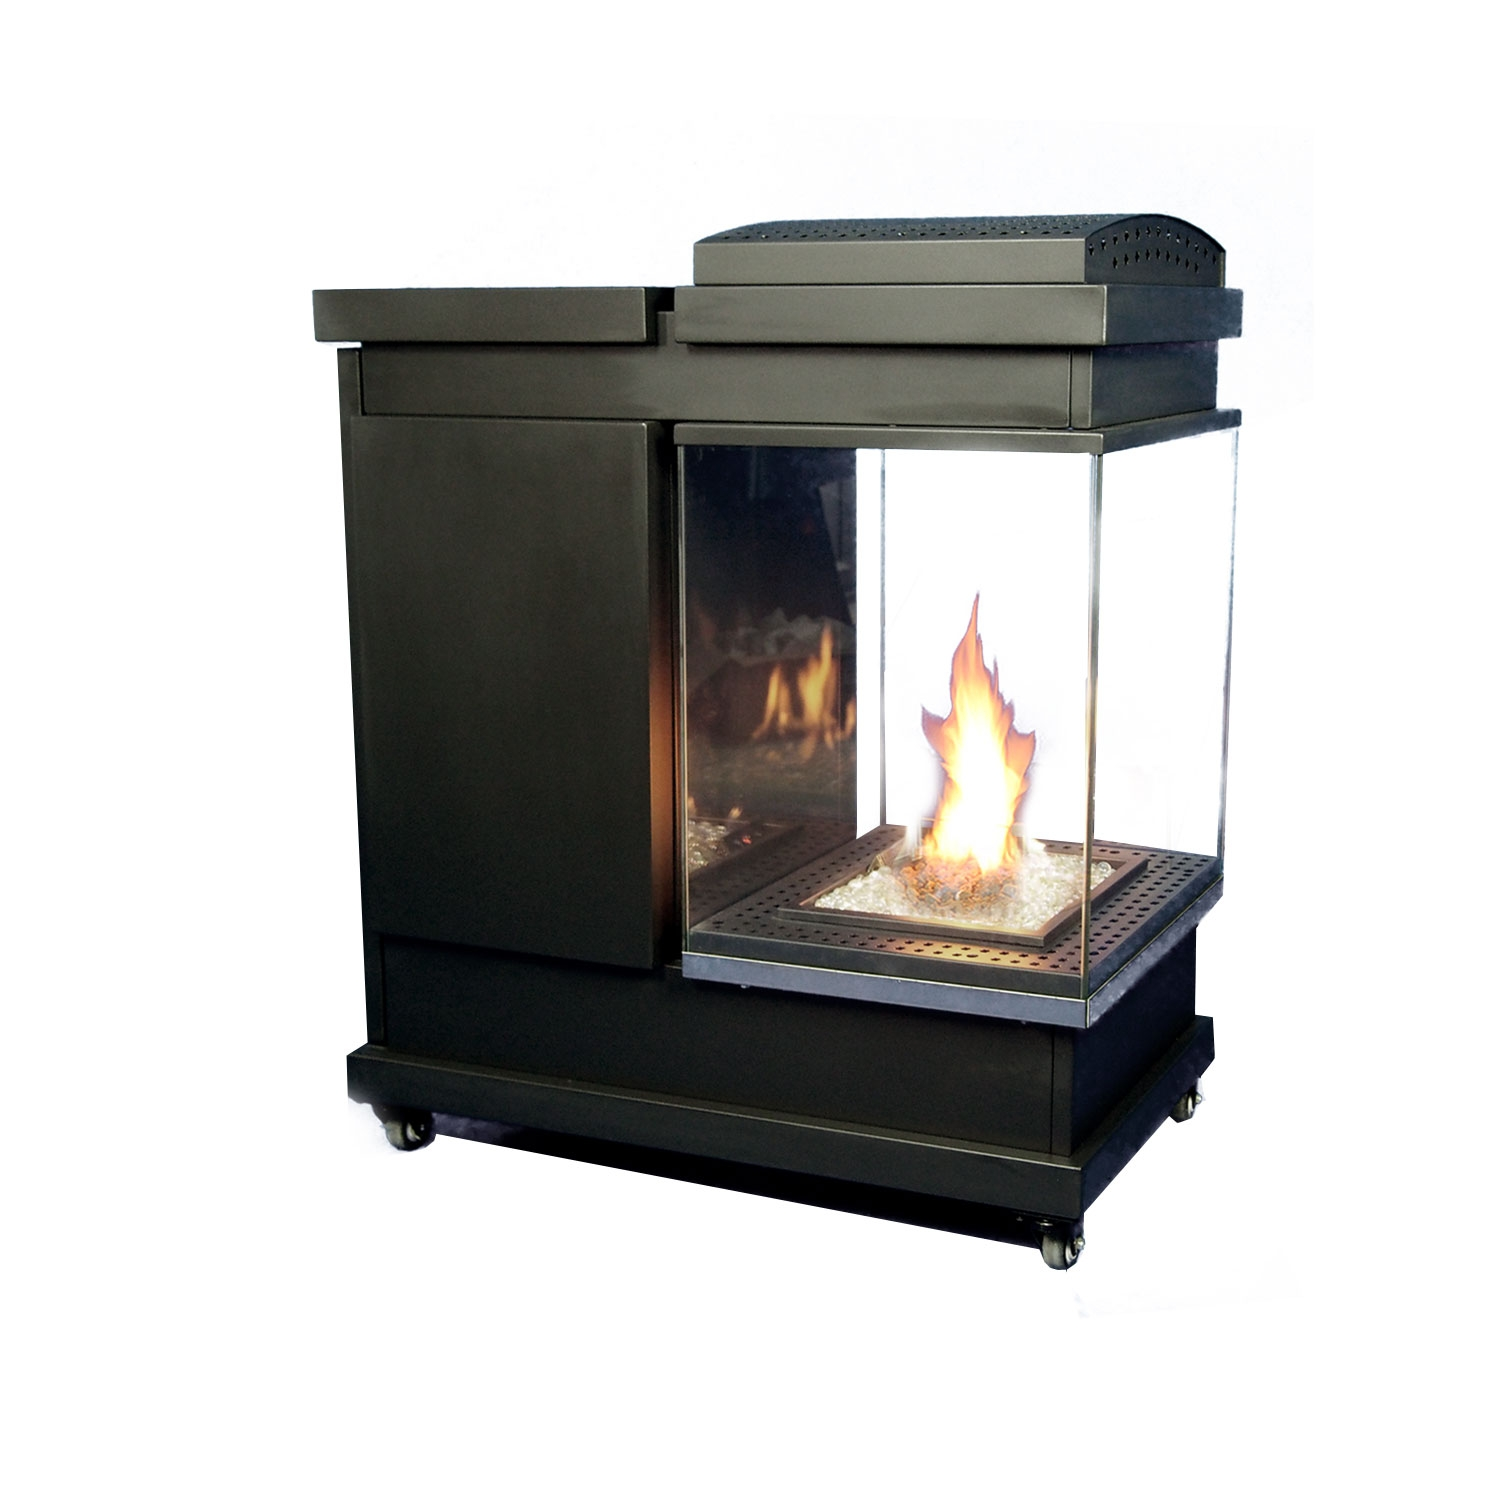 Kongur 425 outdoor gas fire, the solution for pubs, bistros and wine bars